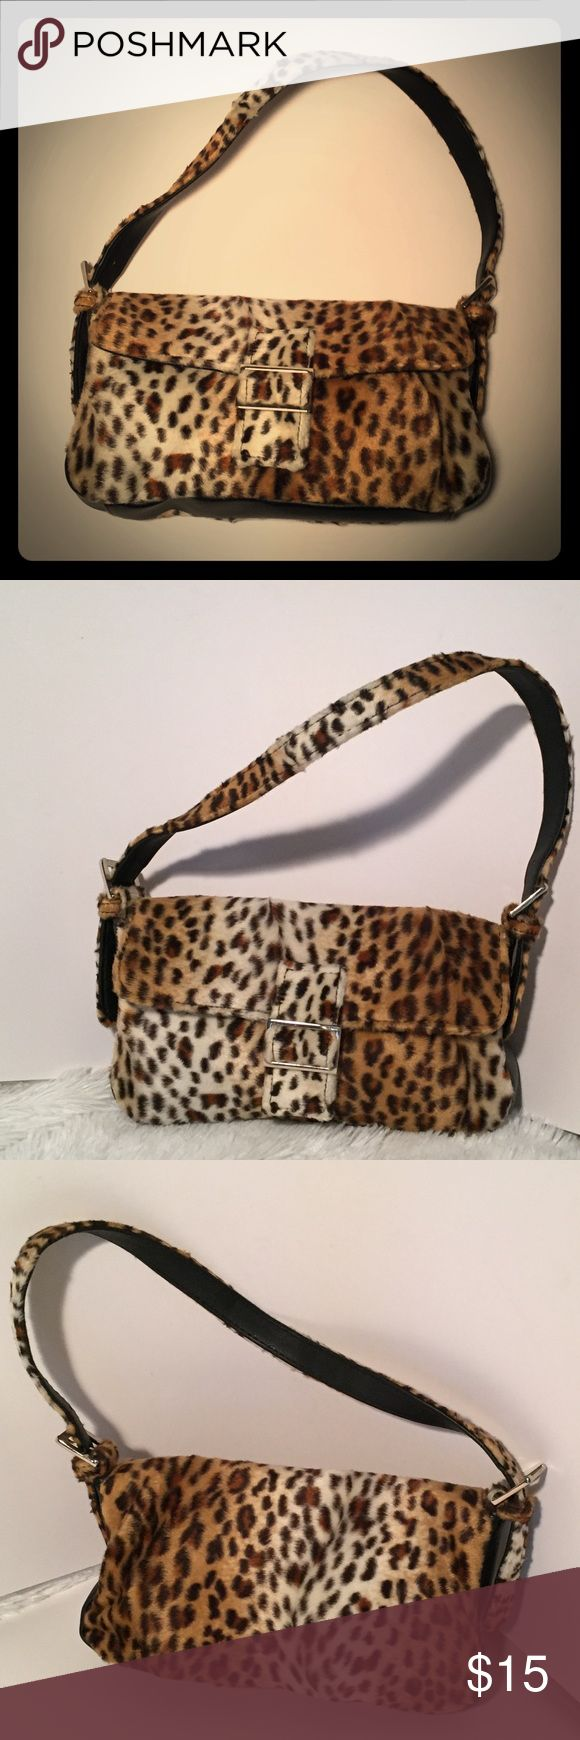 """Leopard Print Faux Fur Mini Handbag Super cute leopard print mini handbag with snap closure and adjustable straps on both sides. Soft and fuzzy. Perfect for a night out. Just add your small wallet, cell phone and lipstick and you're good to hit the town!  Approx measurements: Length 10"""" Width 2"""" Height 6""""  (061) Bags Mini Bags"""